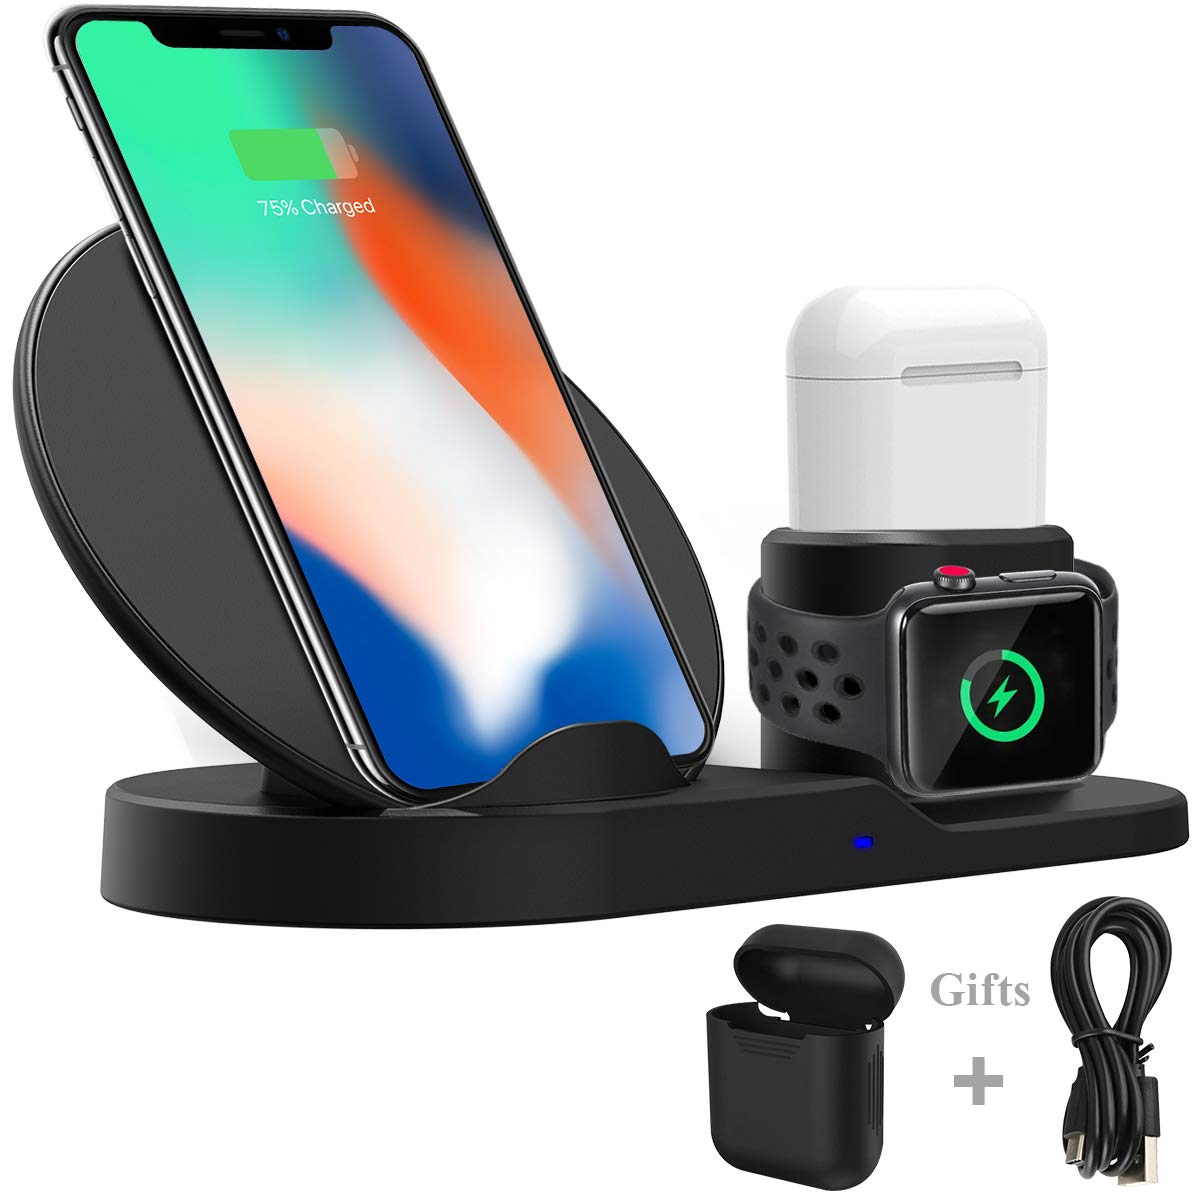 Wireless Charger Stand for iPhone AirPods Apple Watch, Wonsidary Charge Dock Station Charger for...